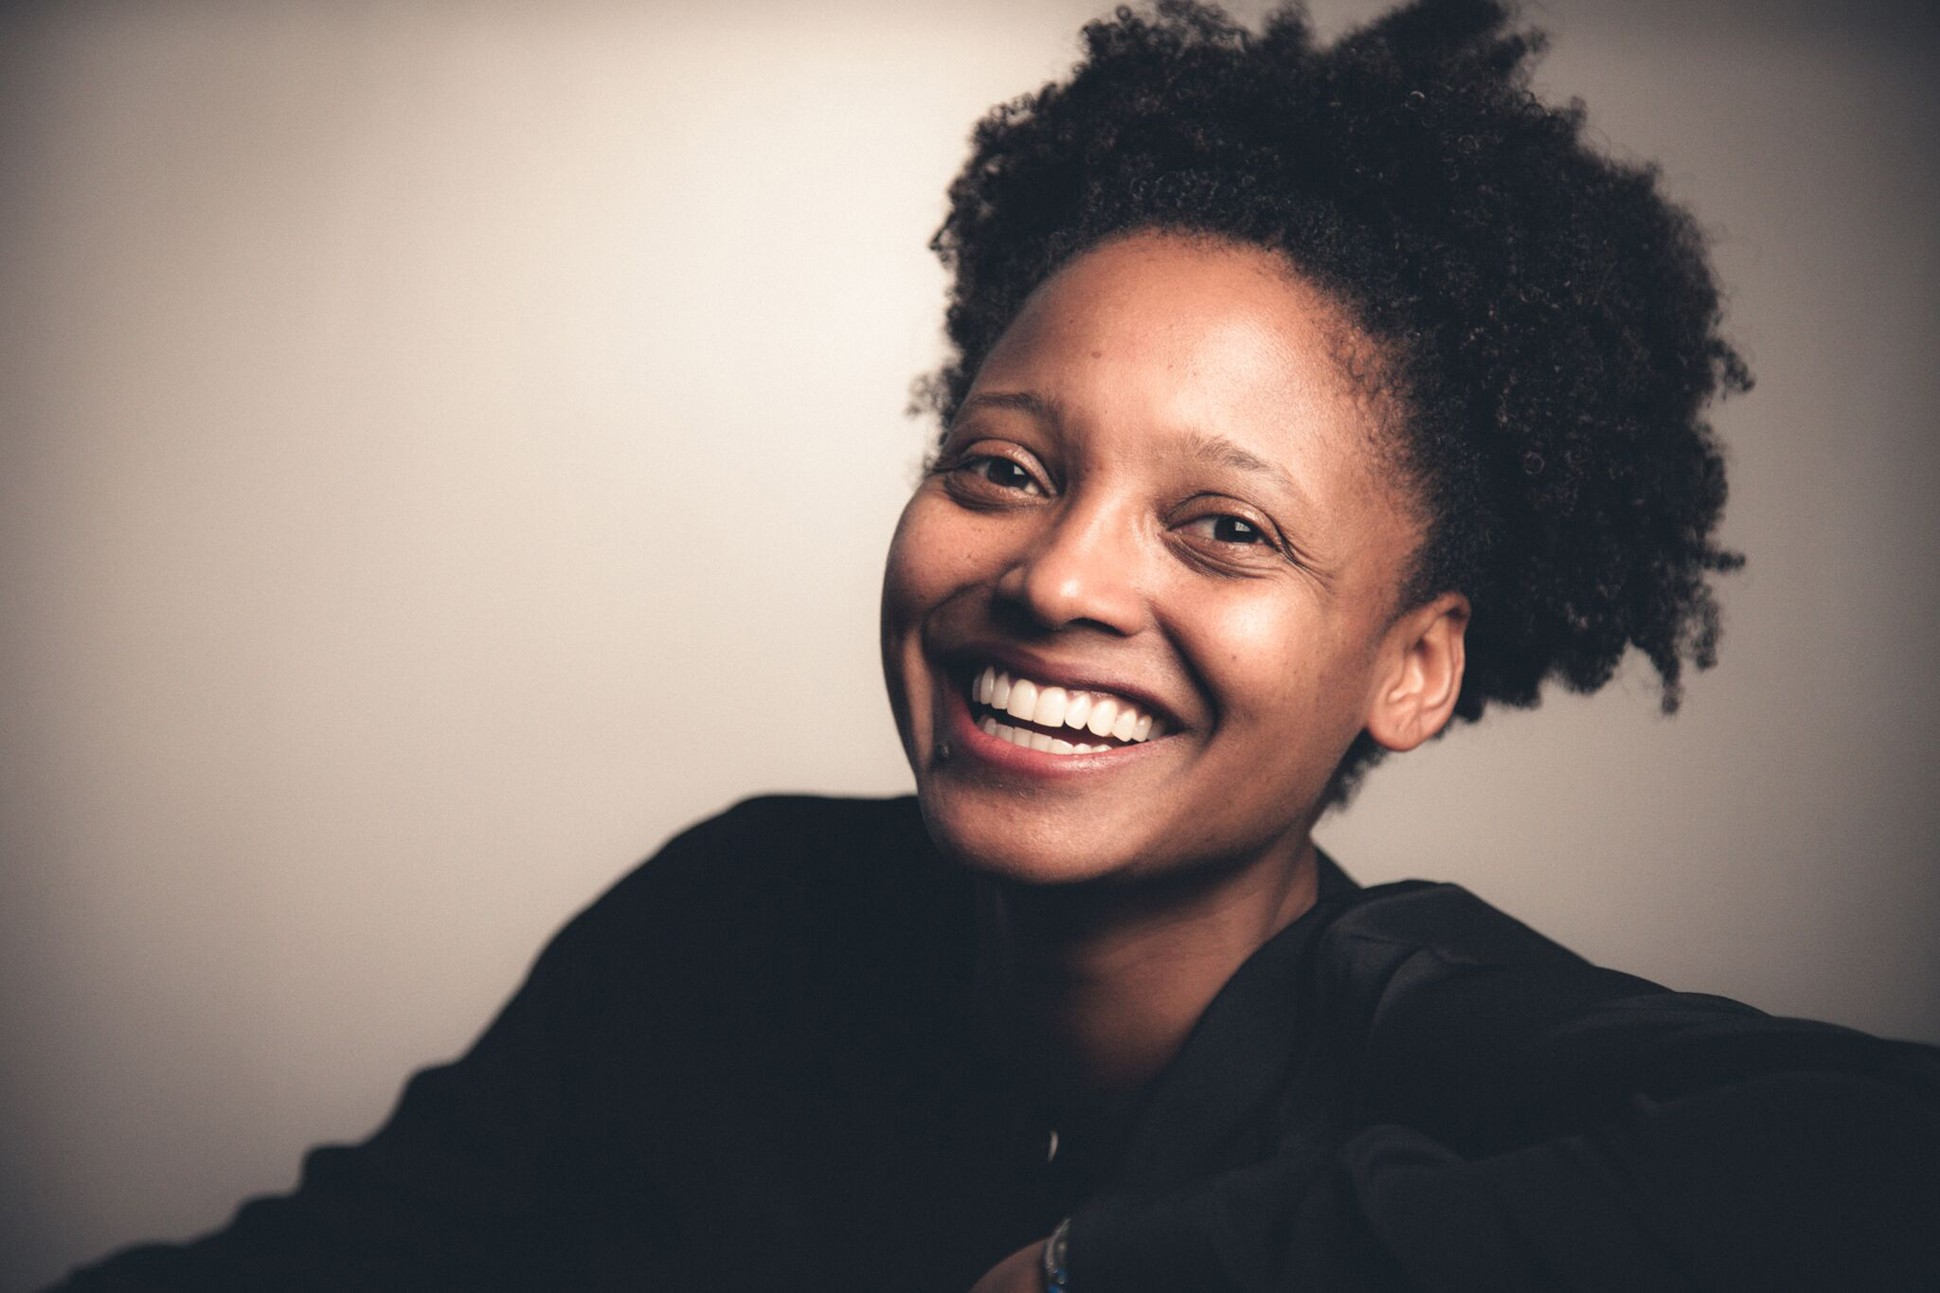 tracy-k-smith-hires-cropped.jpg